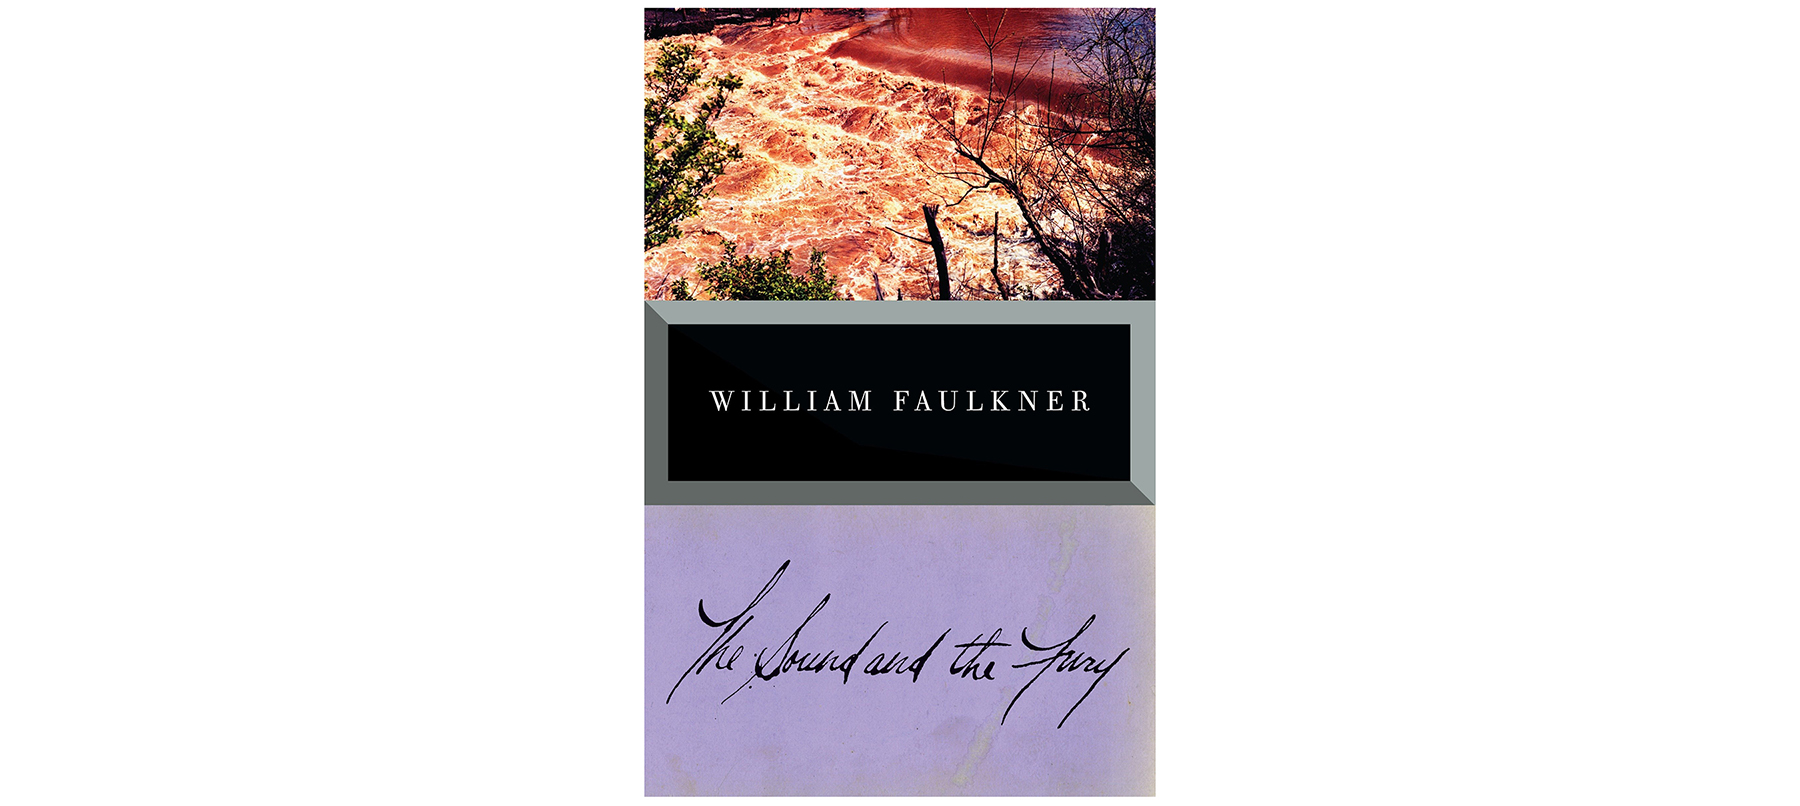 The Sound and the Fury, by William Faulkner